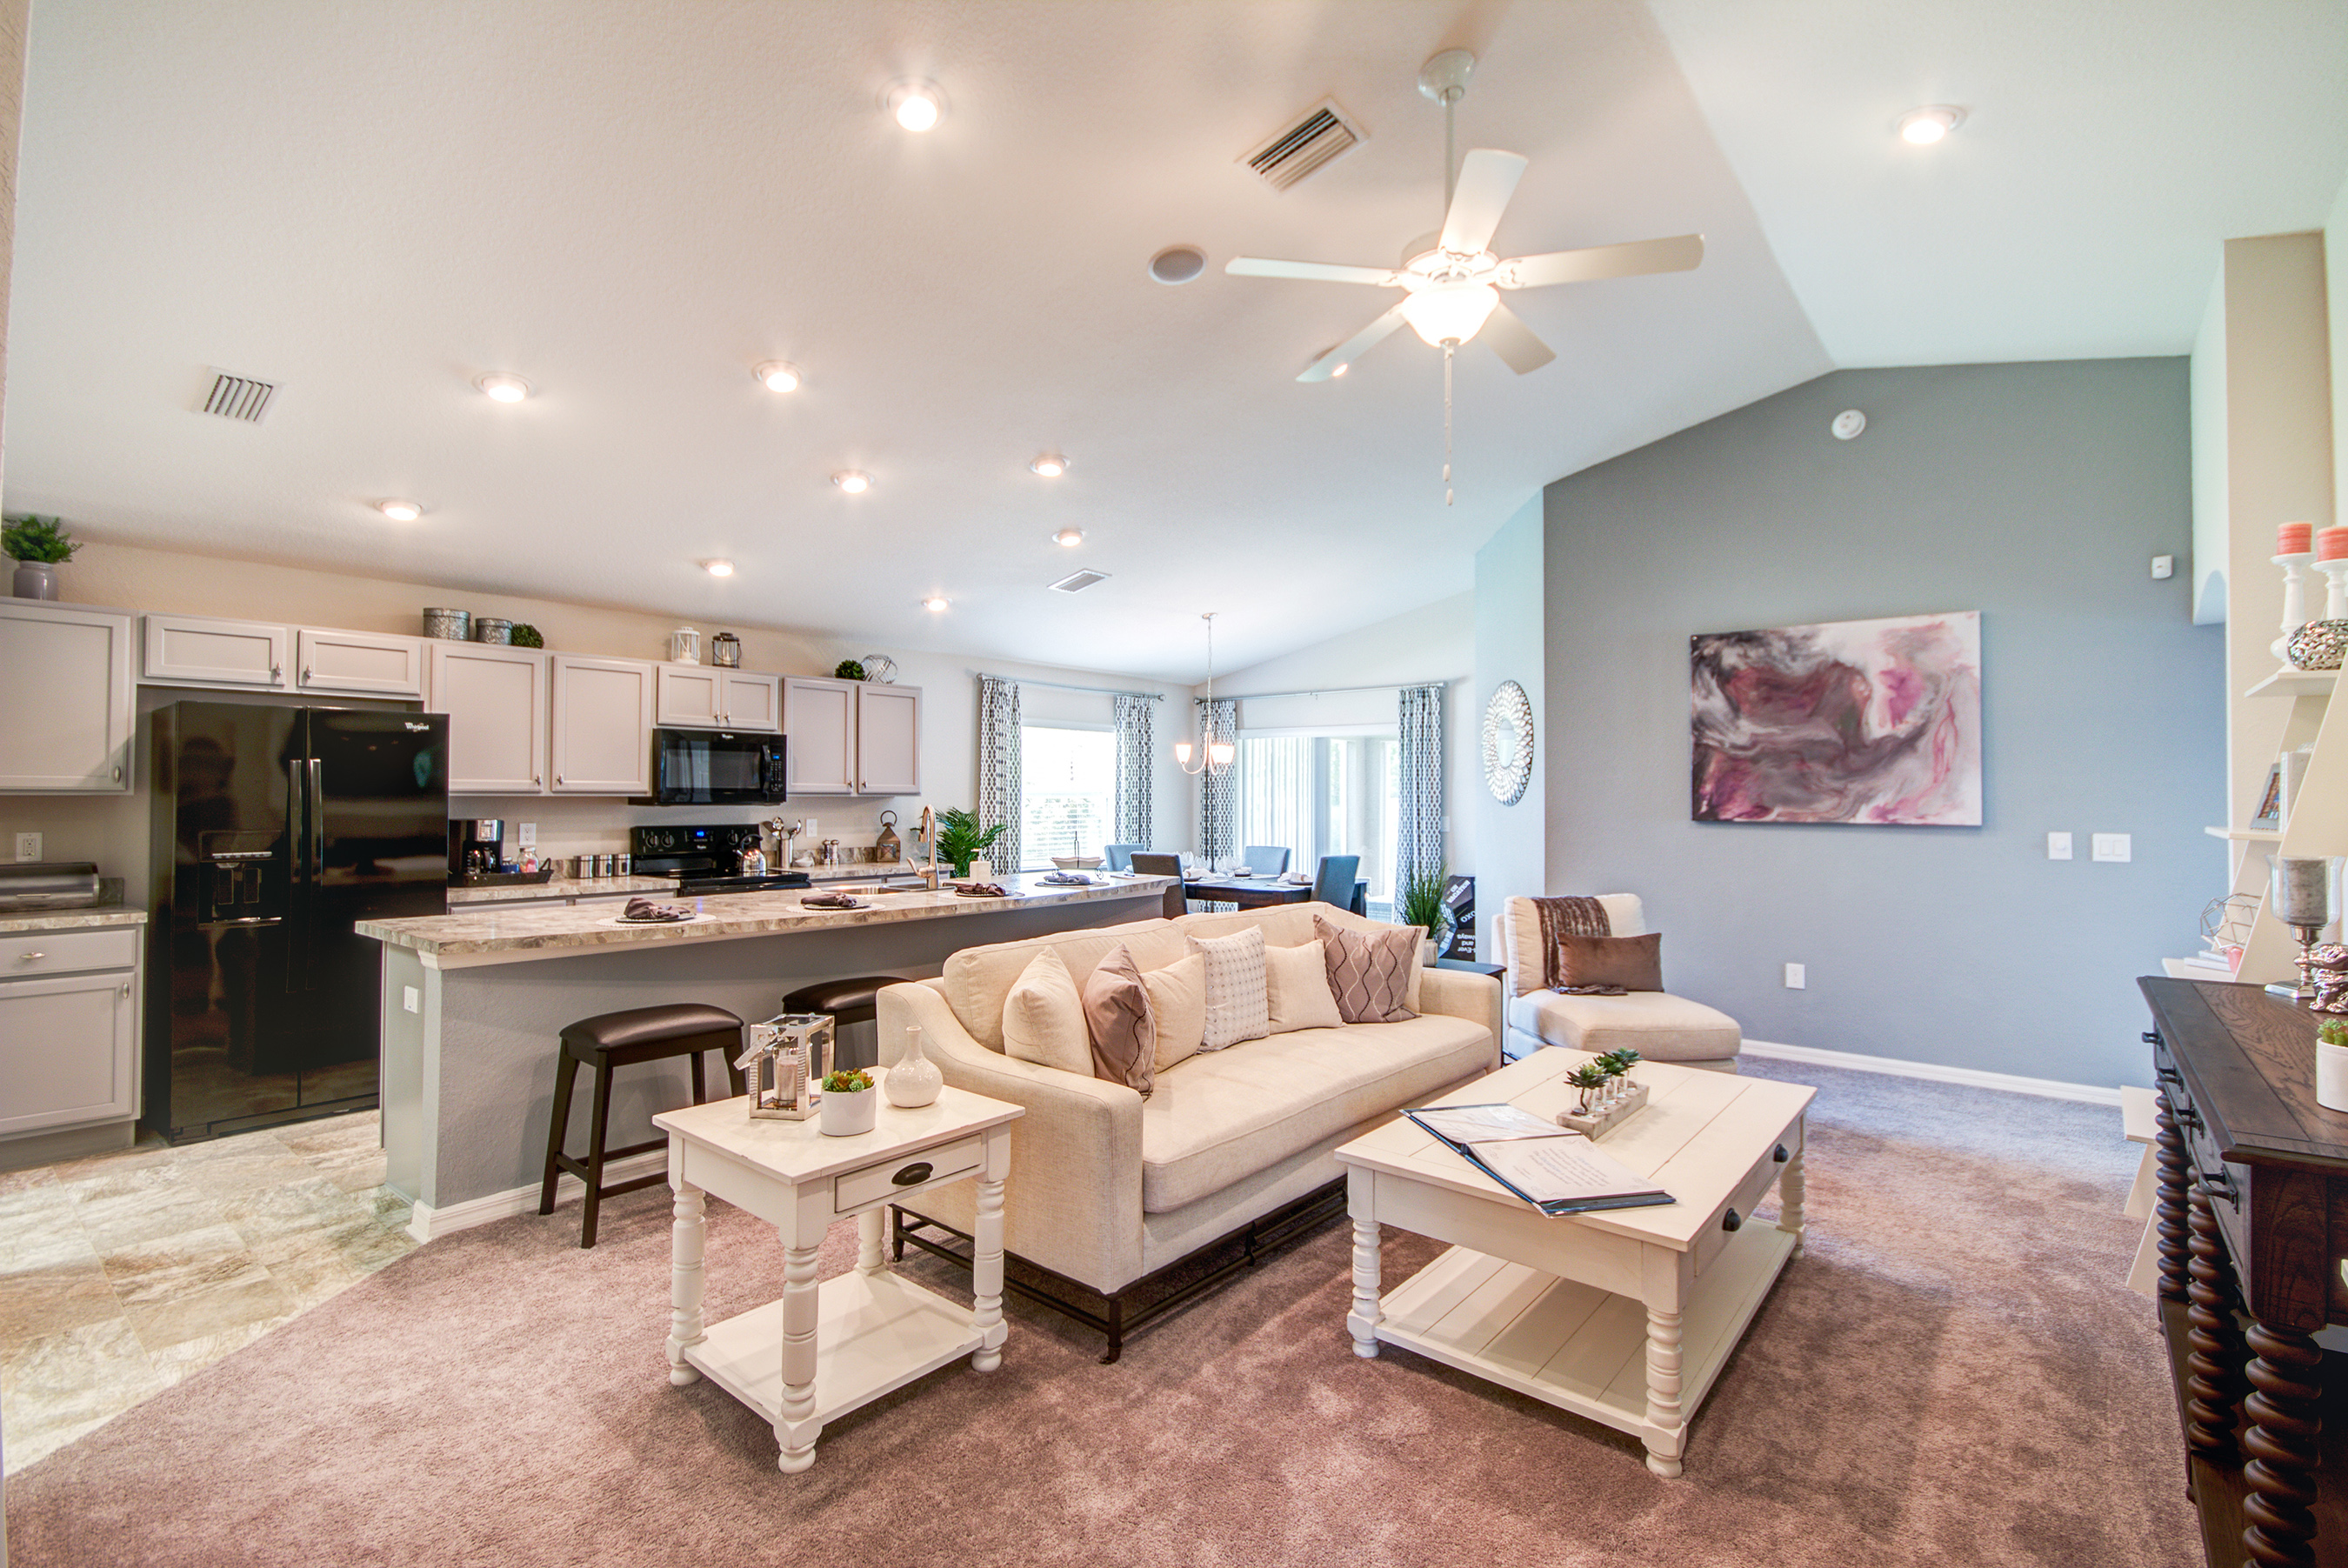 Highland Homes differentiates itself by providing unparalleled levels of personalization at an affordable price point for its customers.